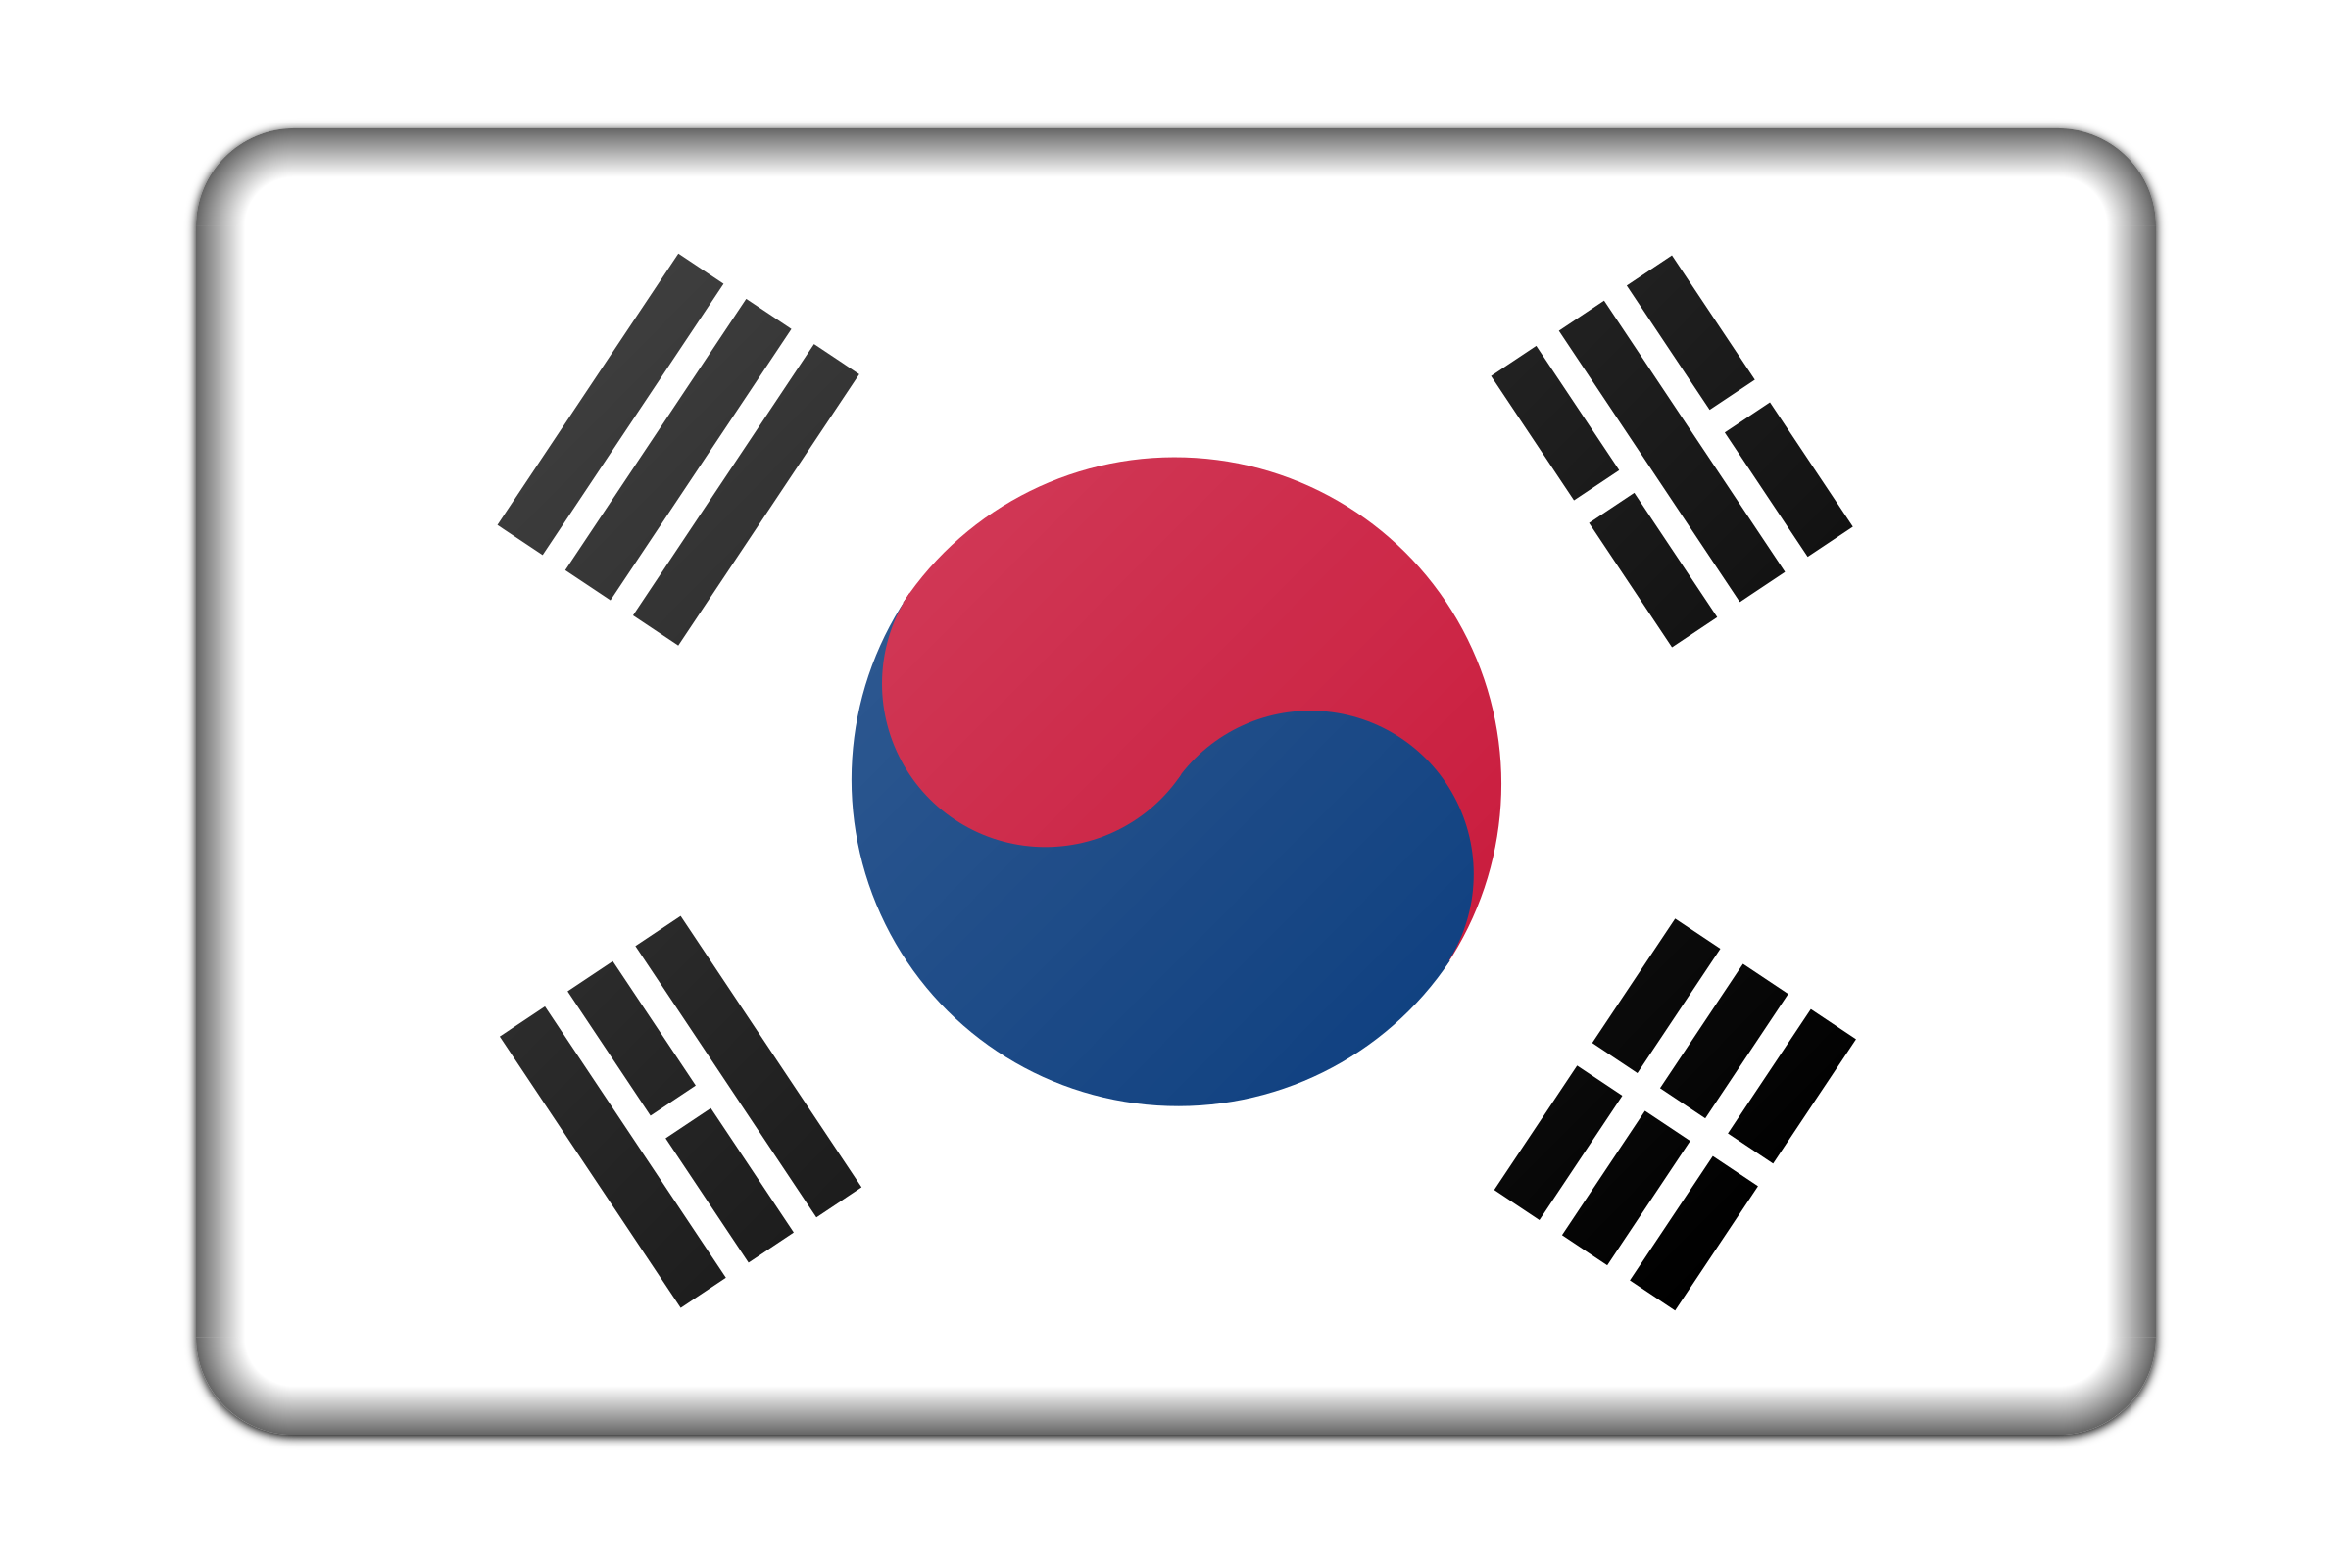 South Korea flag (bevelled) by Firkin